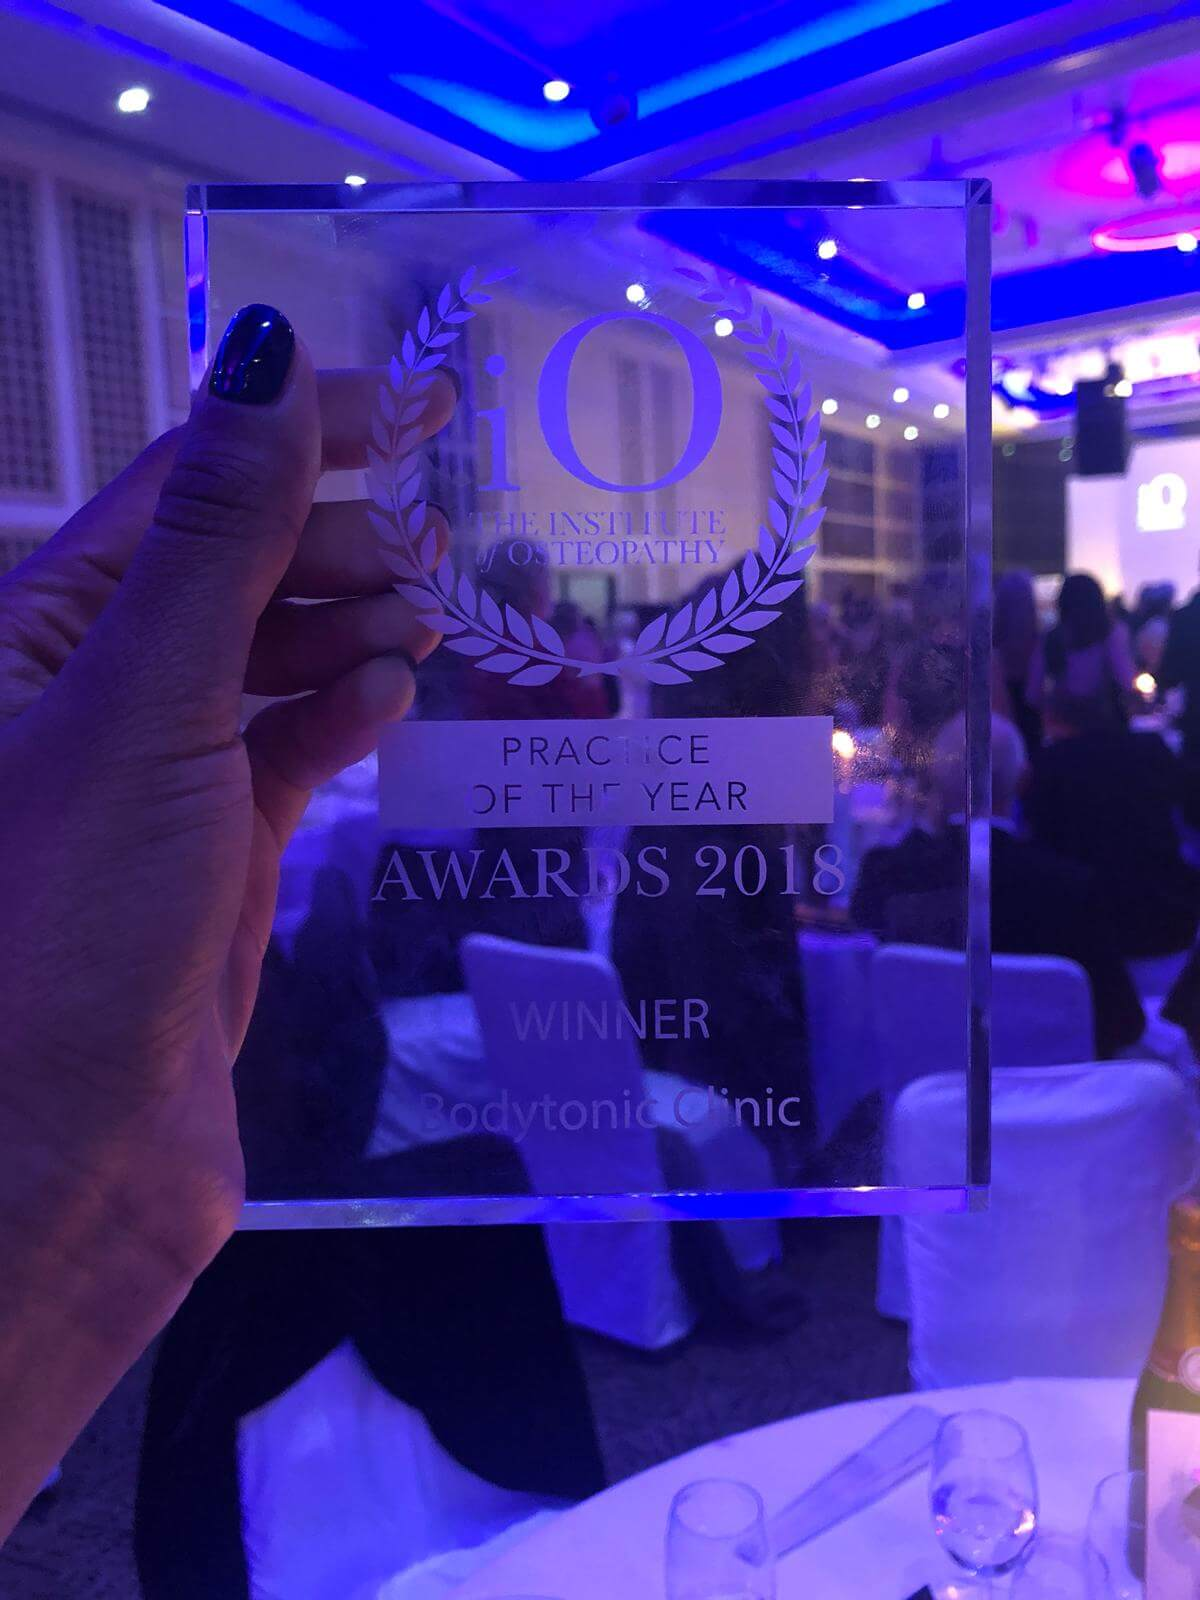 The award Winner of The Institute of Osteopathy Practice of the Year 2018